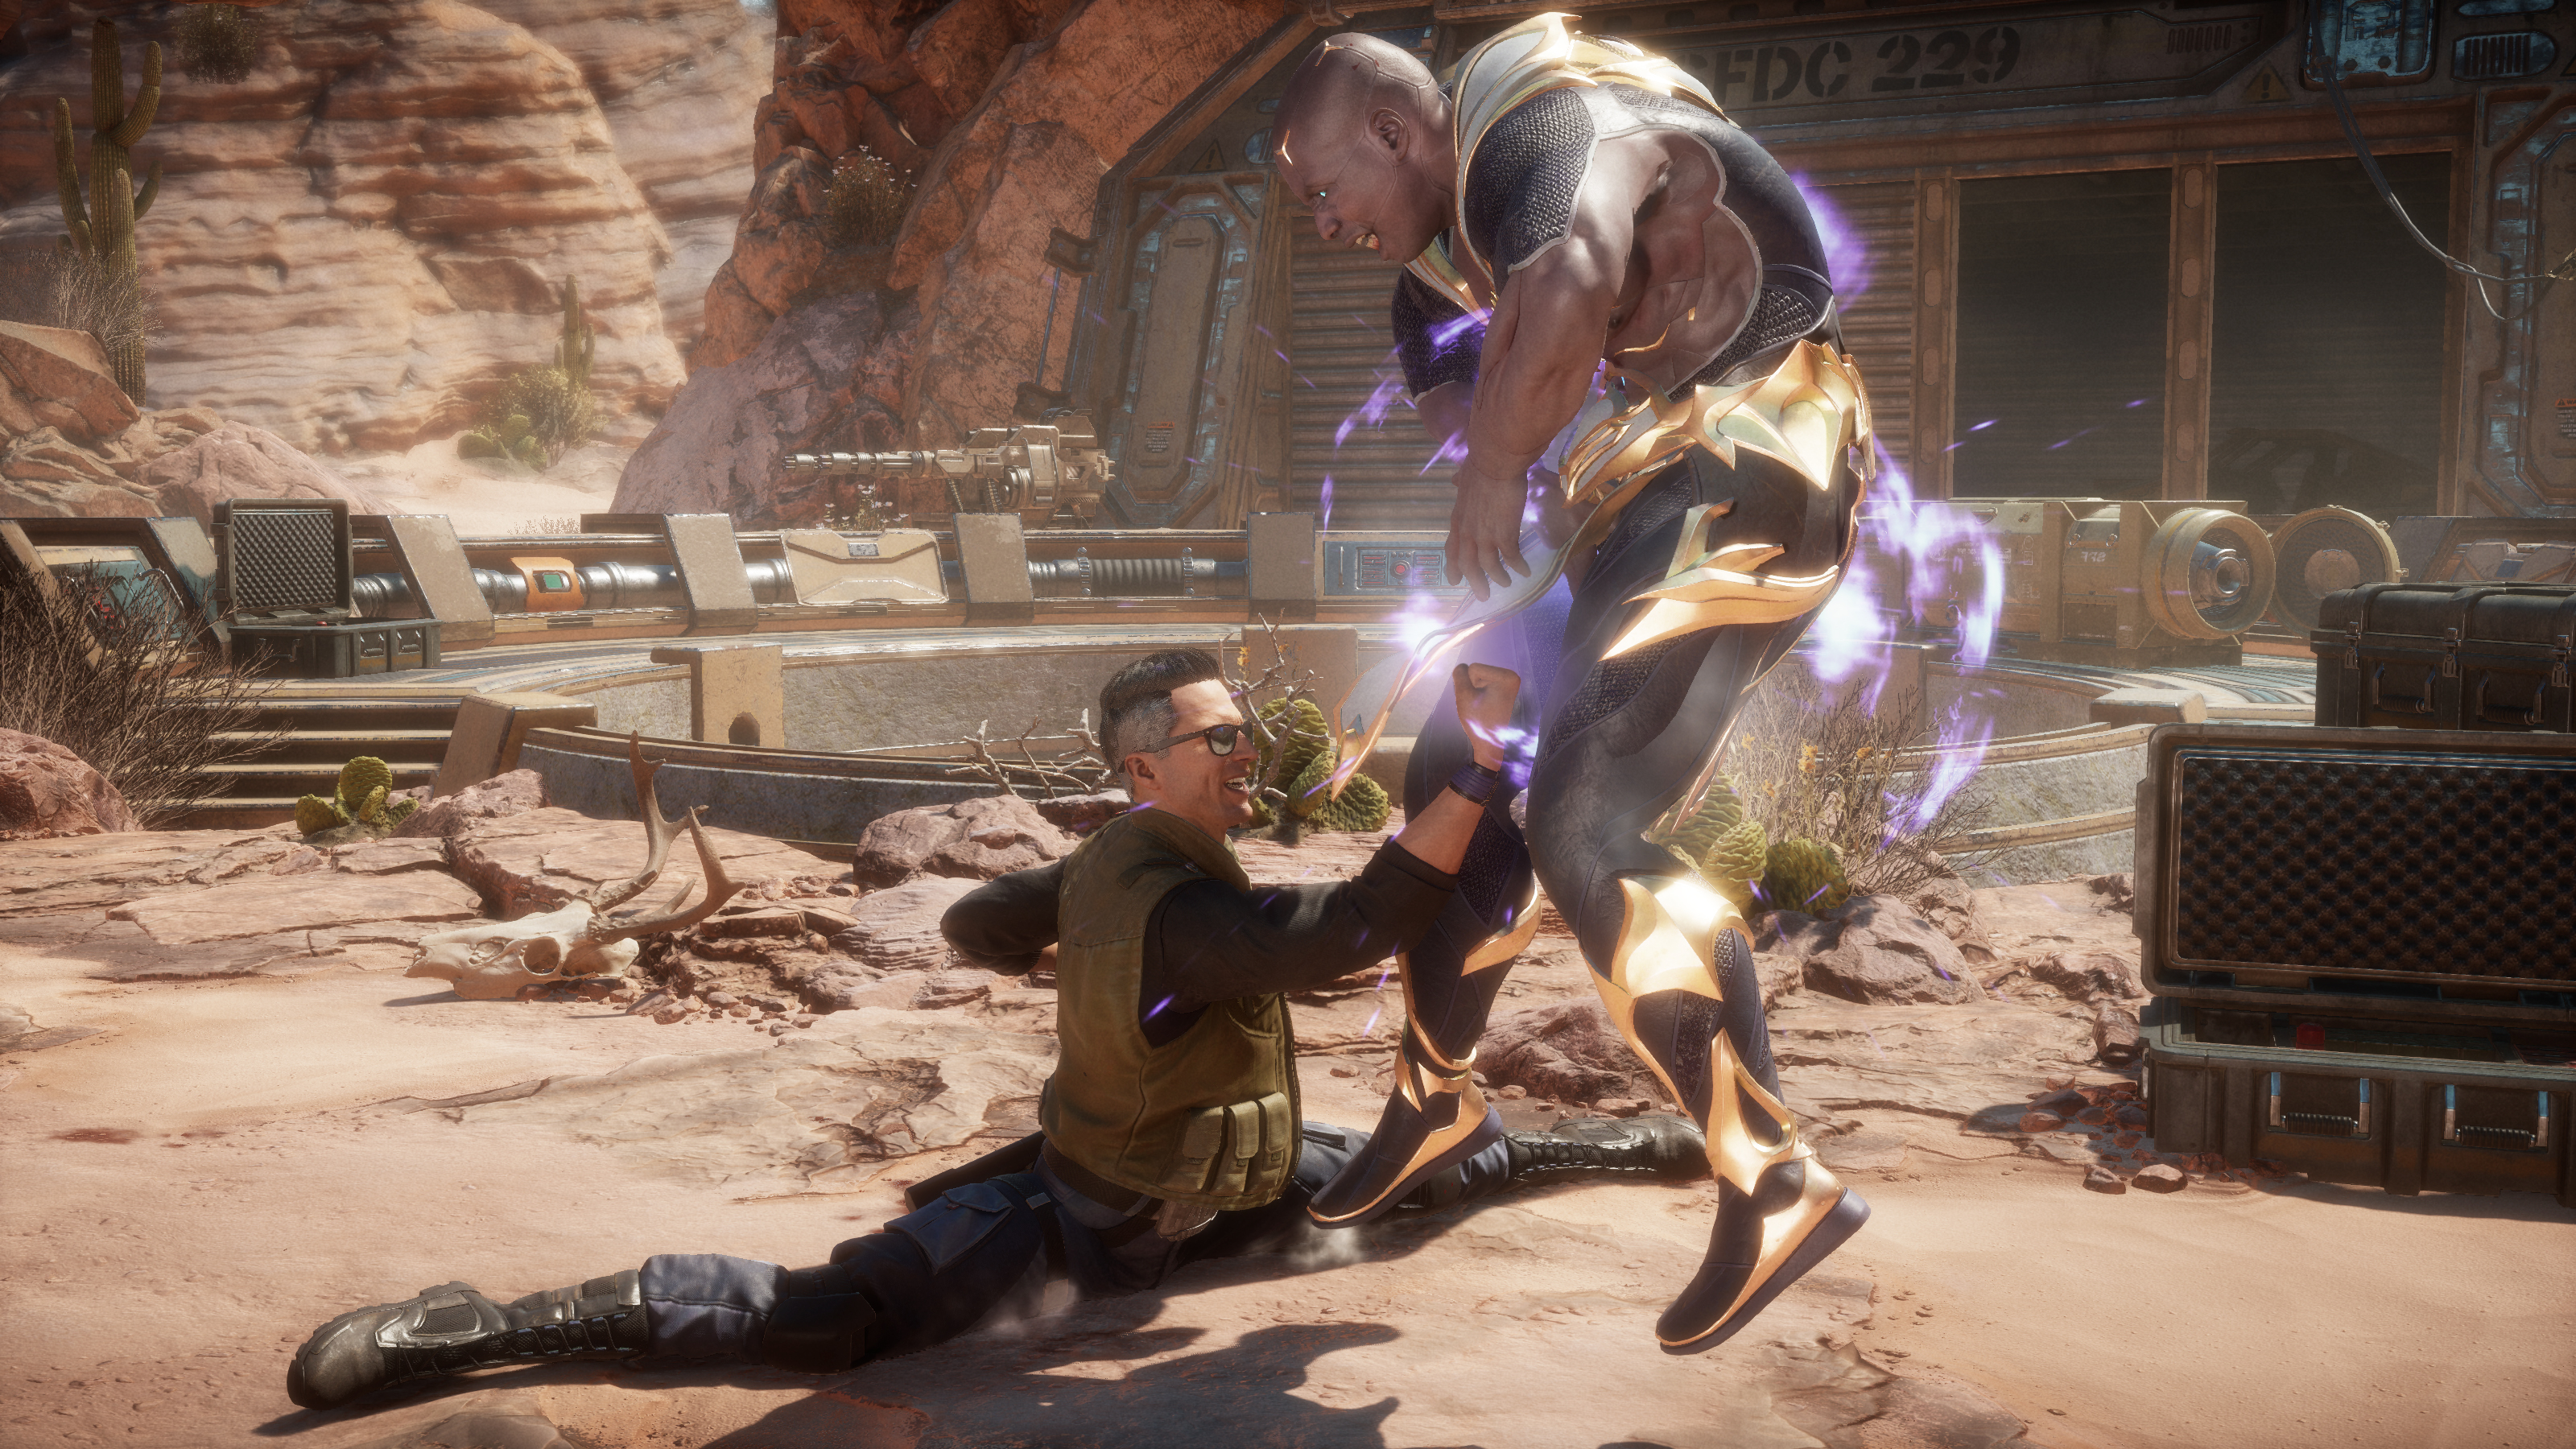 Mortal Kombat 11': Roster, DLC Info, Release Date, for the Iconic